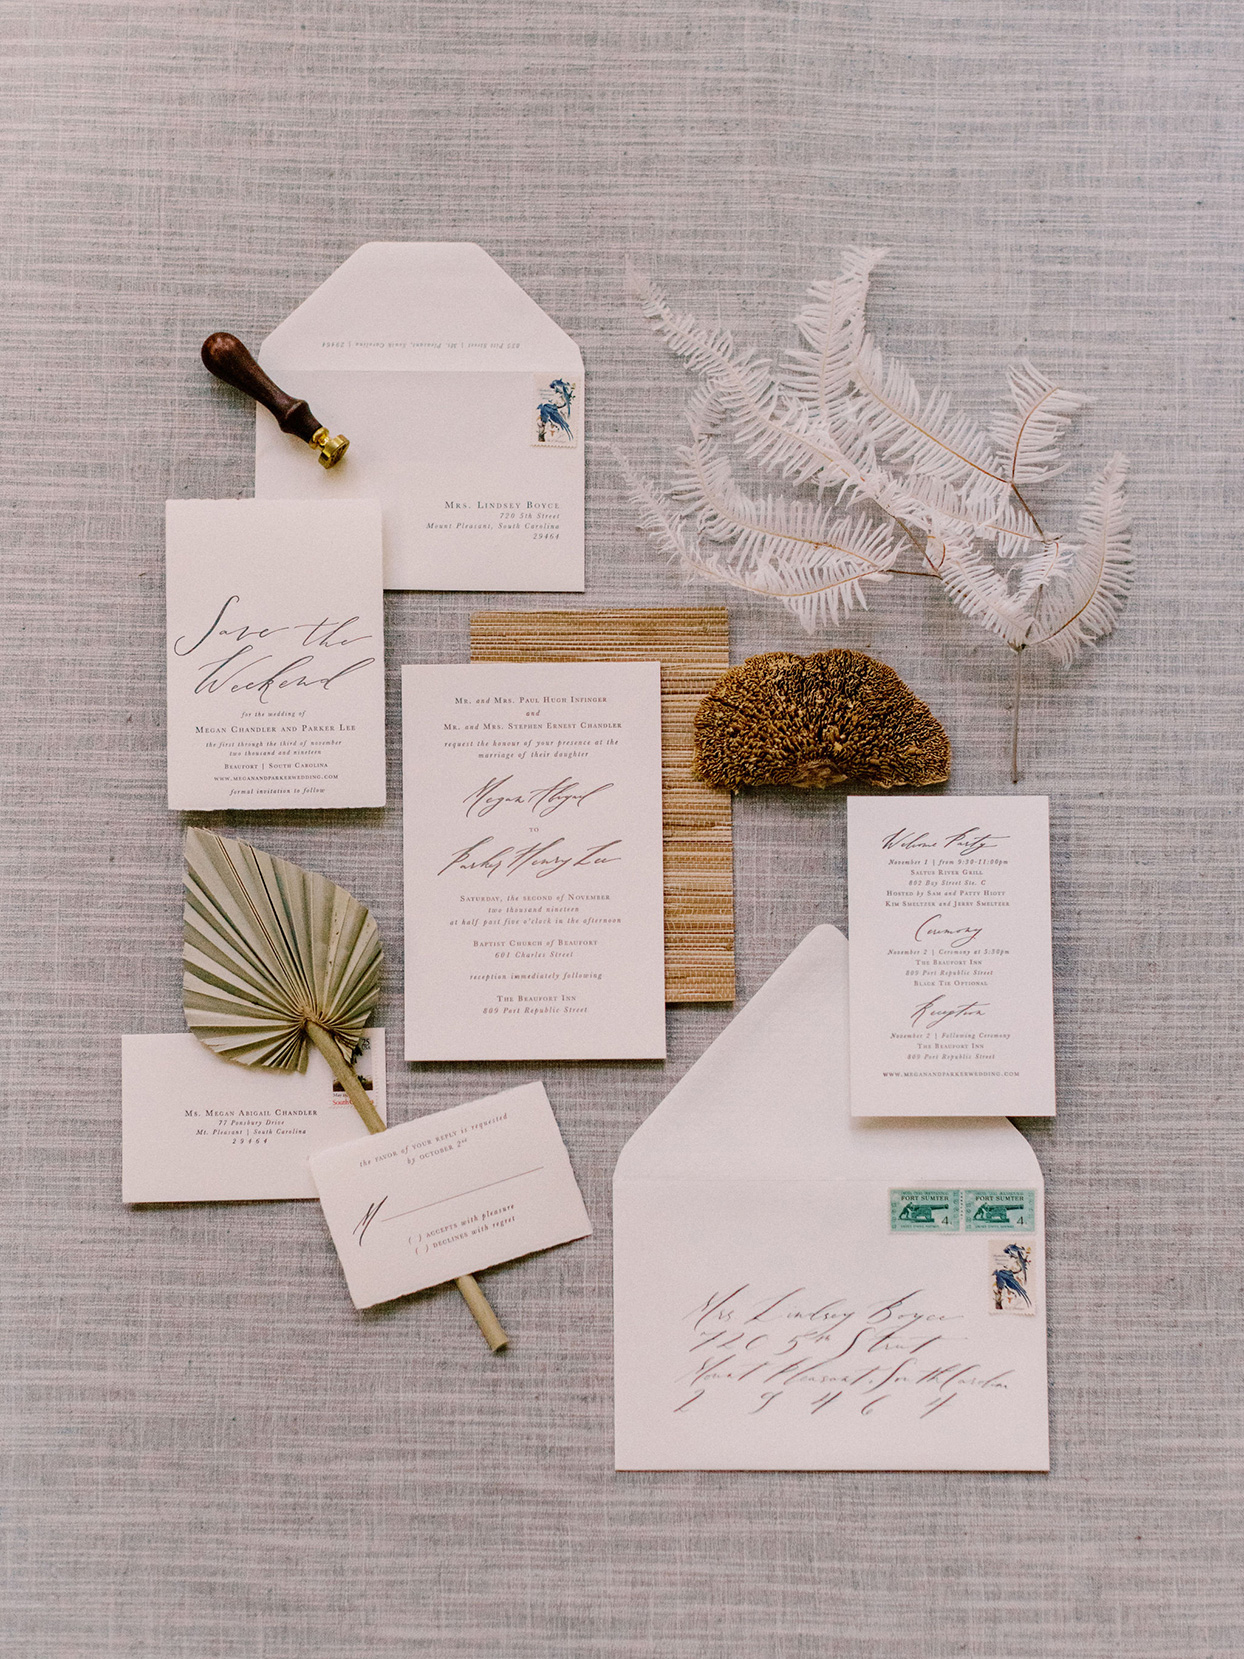 megan parking wedding neutral tones elegant invitation suite